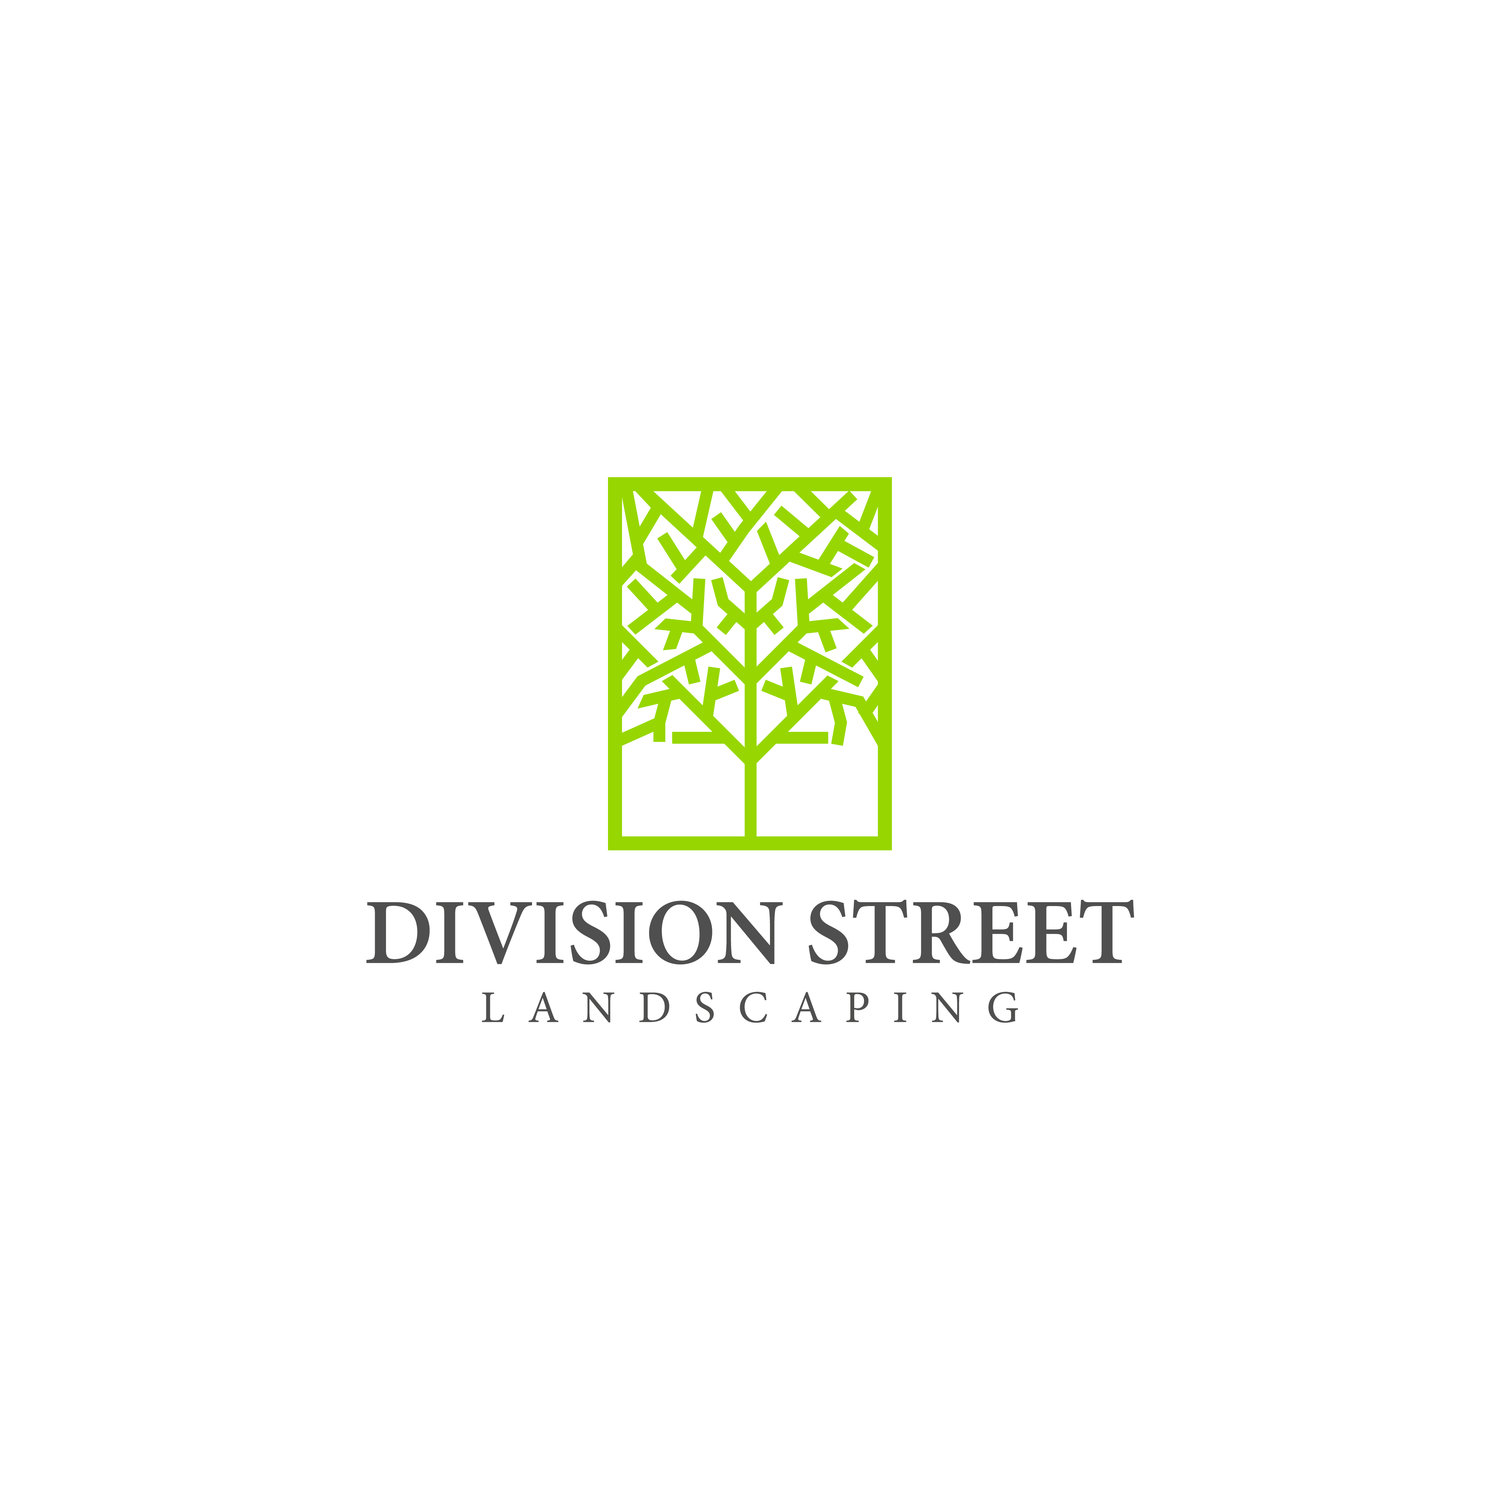 Division Street Landscaping